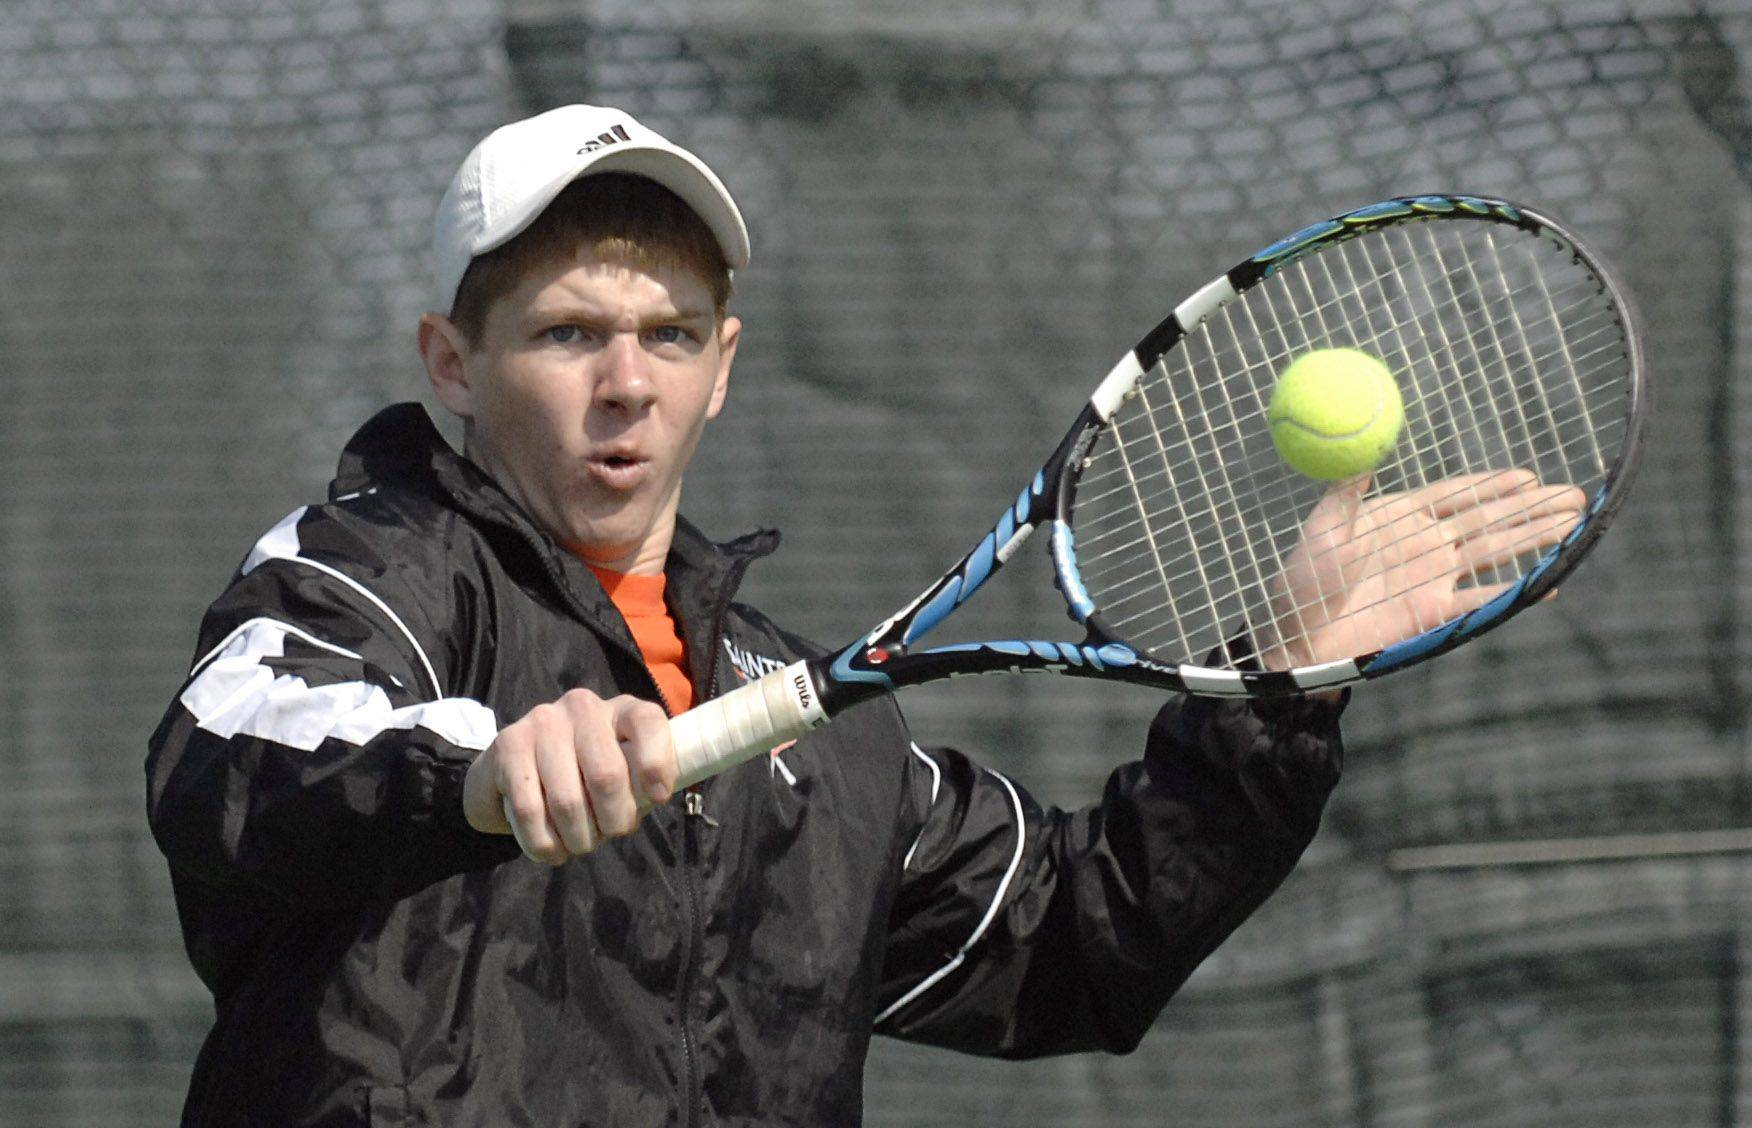 St. Charles East's Mike Muir returns a shot in his second doubles match Saturday.